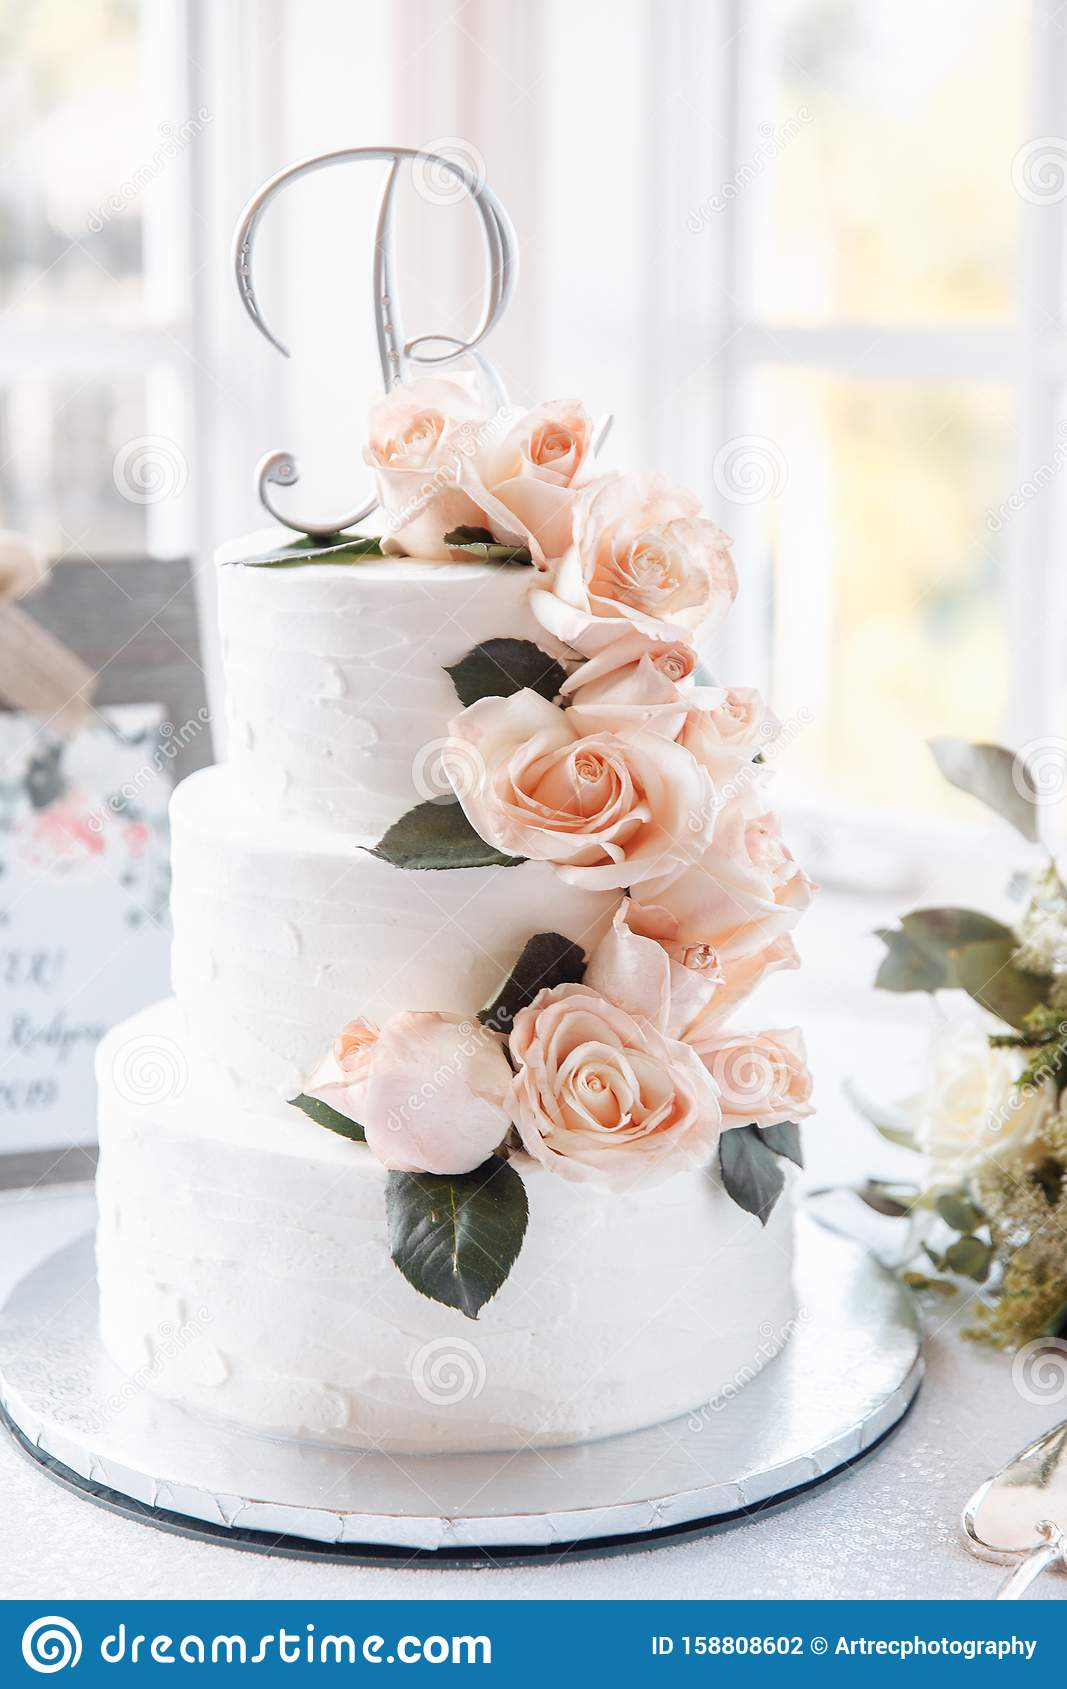 Tree Tired White Wedding Cake With Natural Peach Roses And Fake